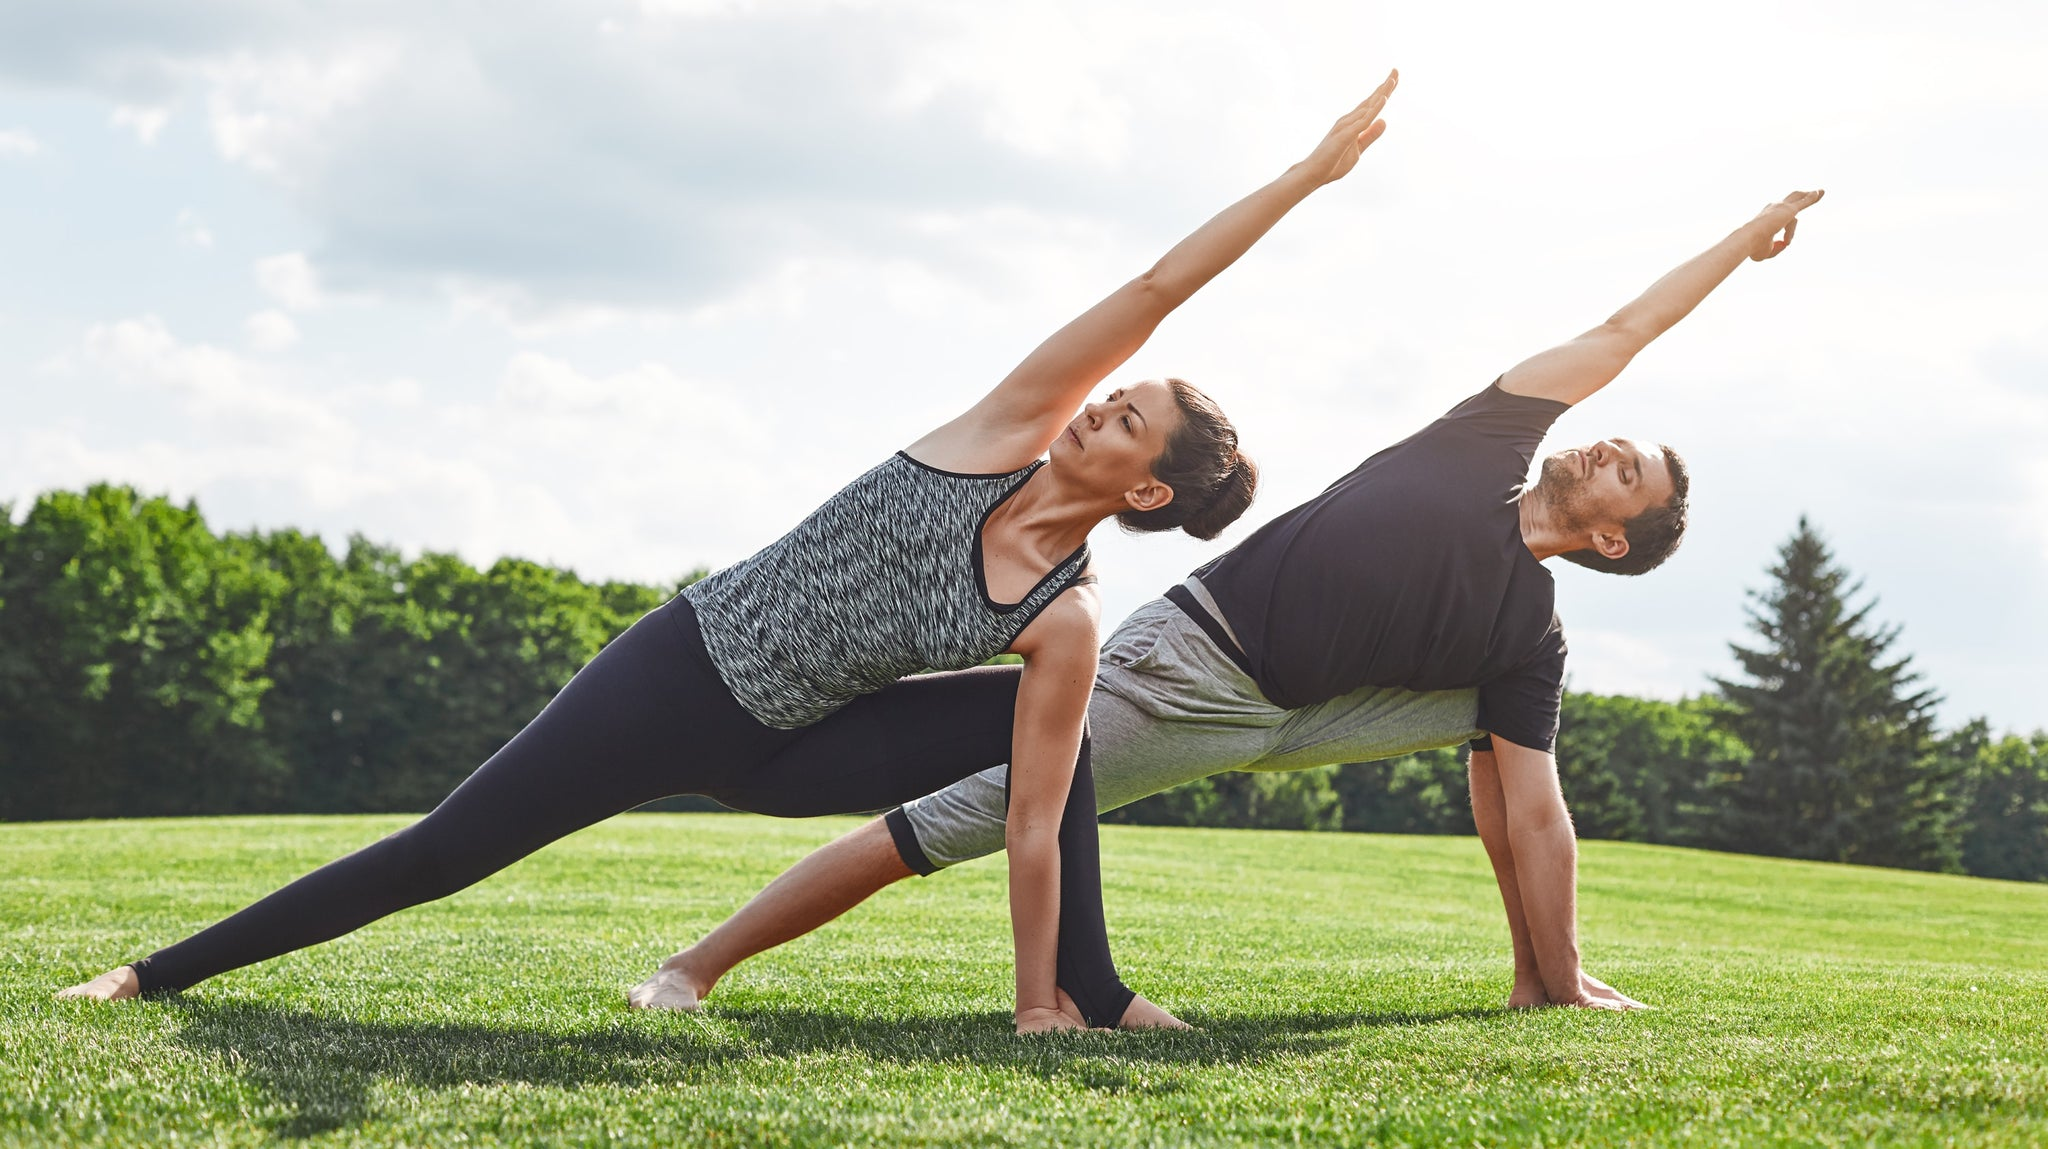 Two people in a park performing the yoga pose parsvokanasana - extended side angle